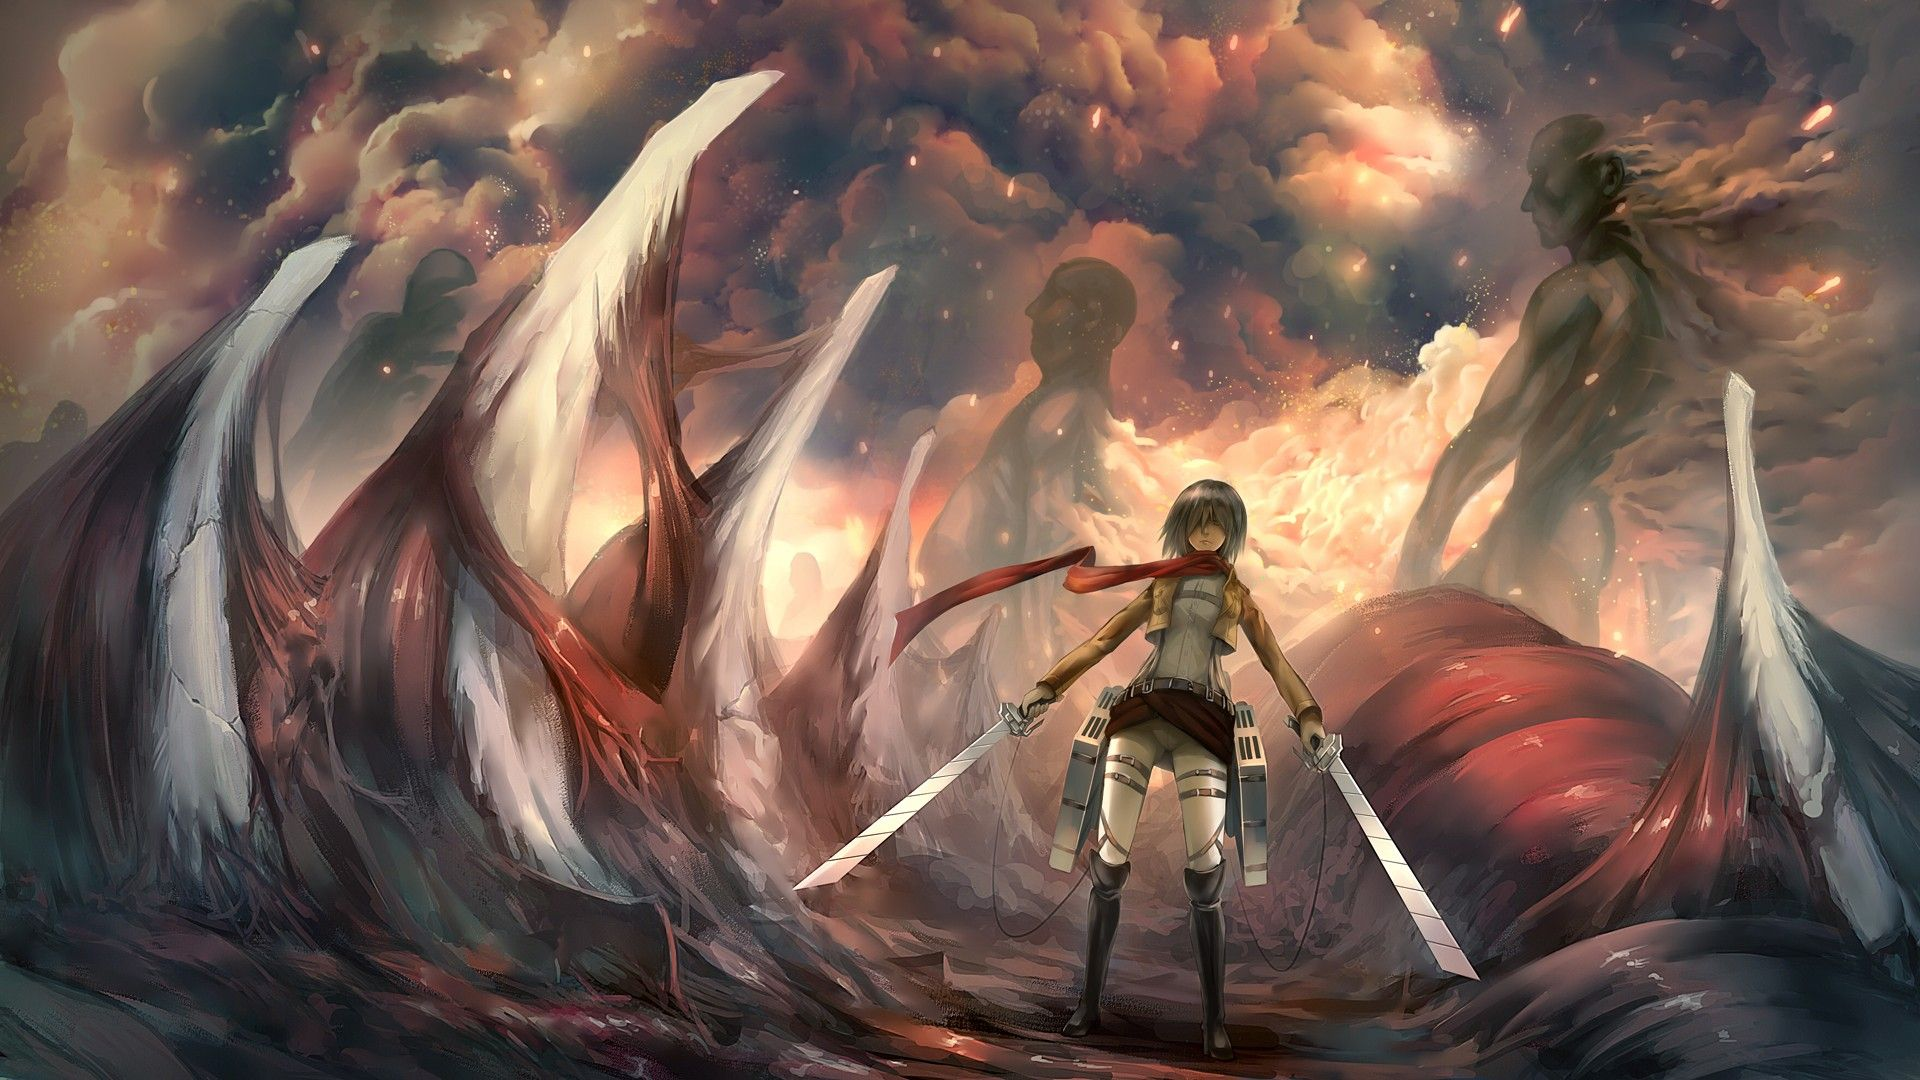 147 Attack On Titan Wallpapers Attack On Titan Backgrounds Attack On Titan Art Attack On Titan Hd Anime Wallpapers